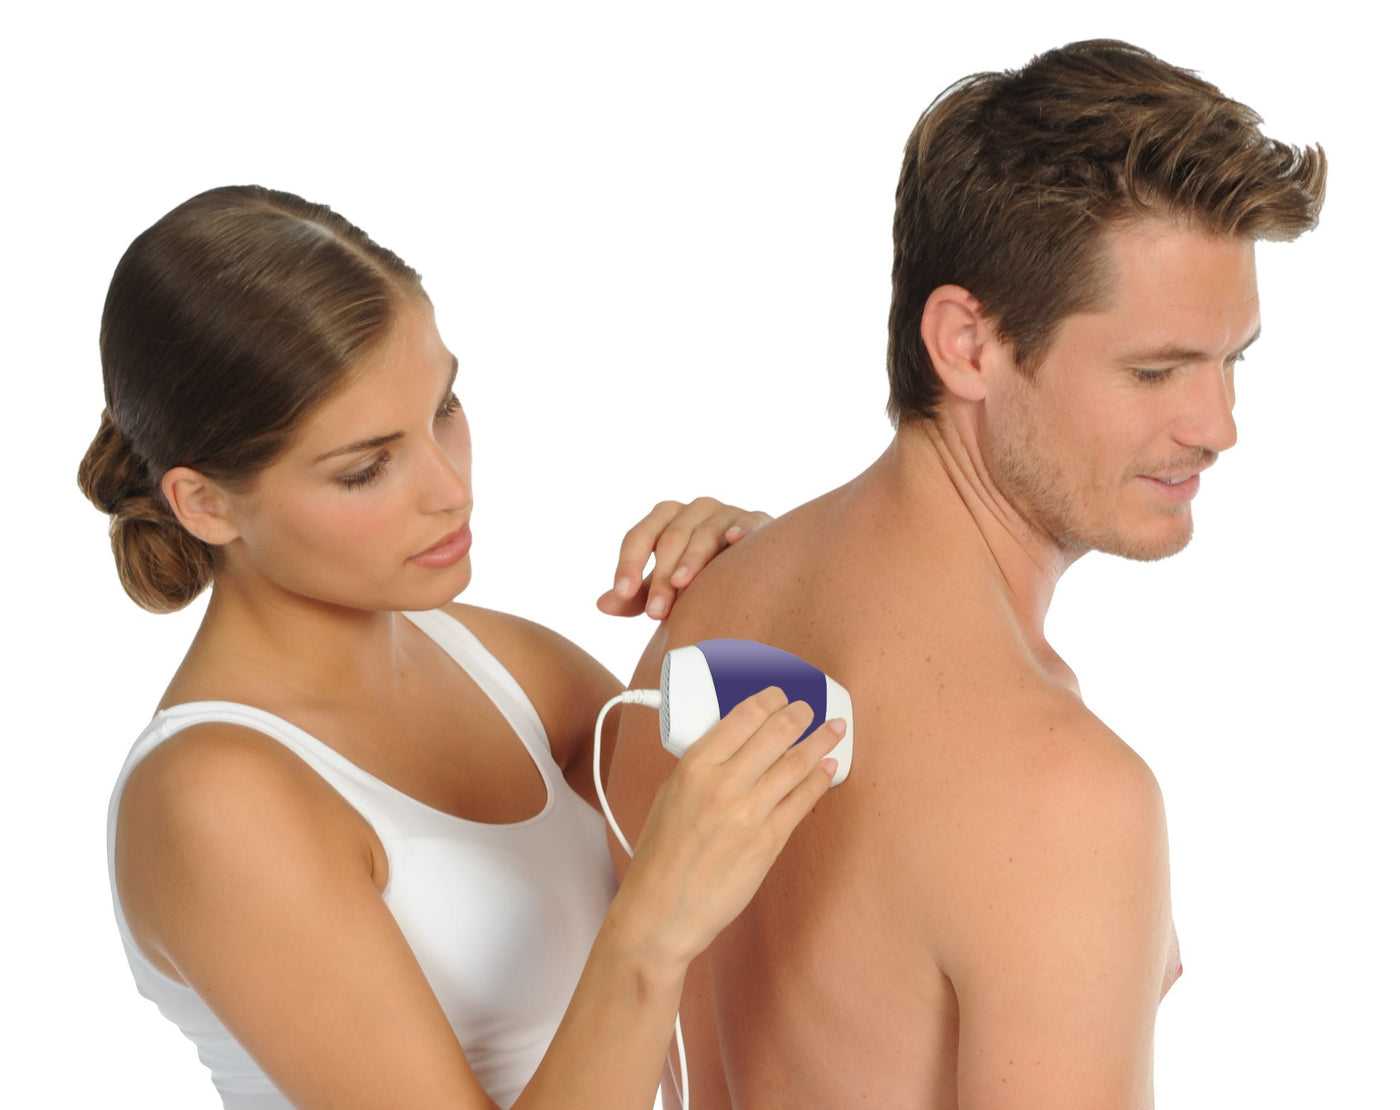 Pros & Cons of Hair Removal Devices & Methods for Men